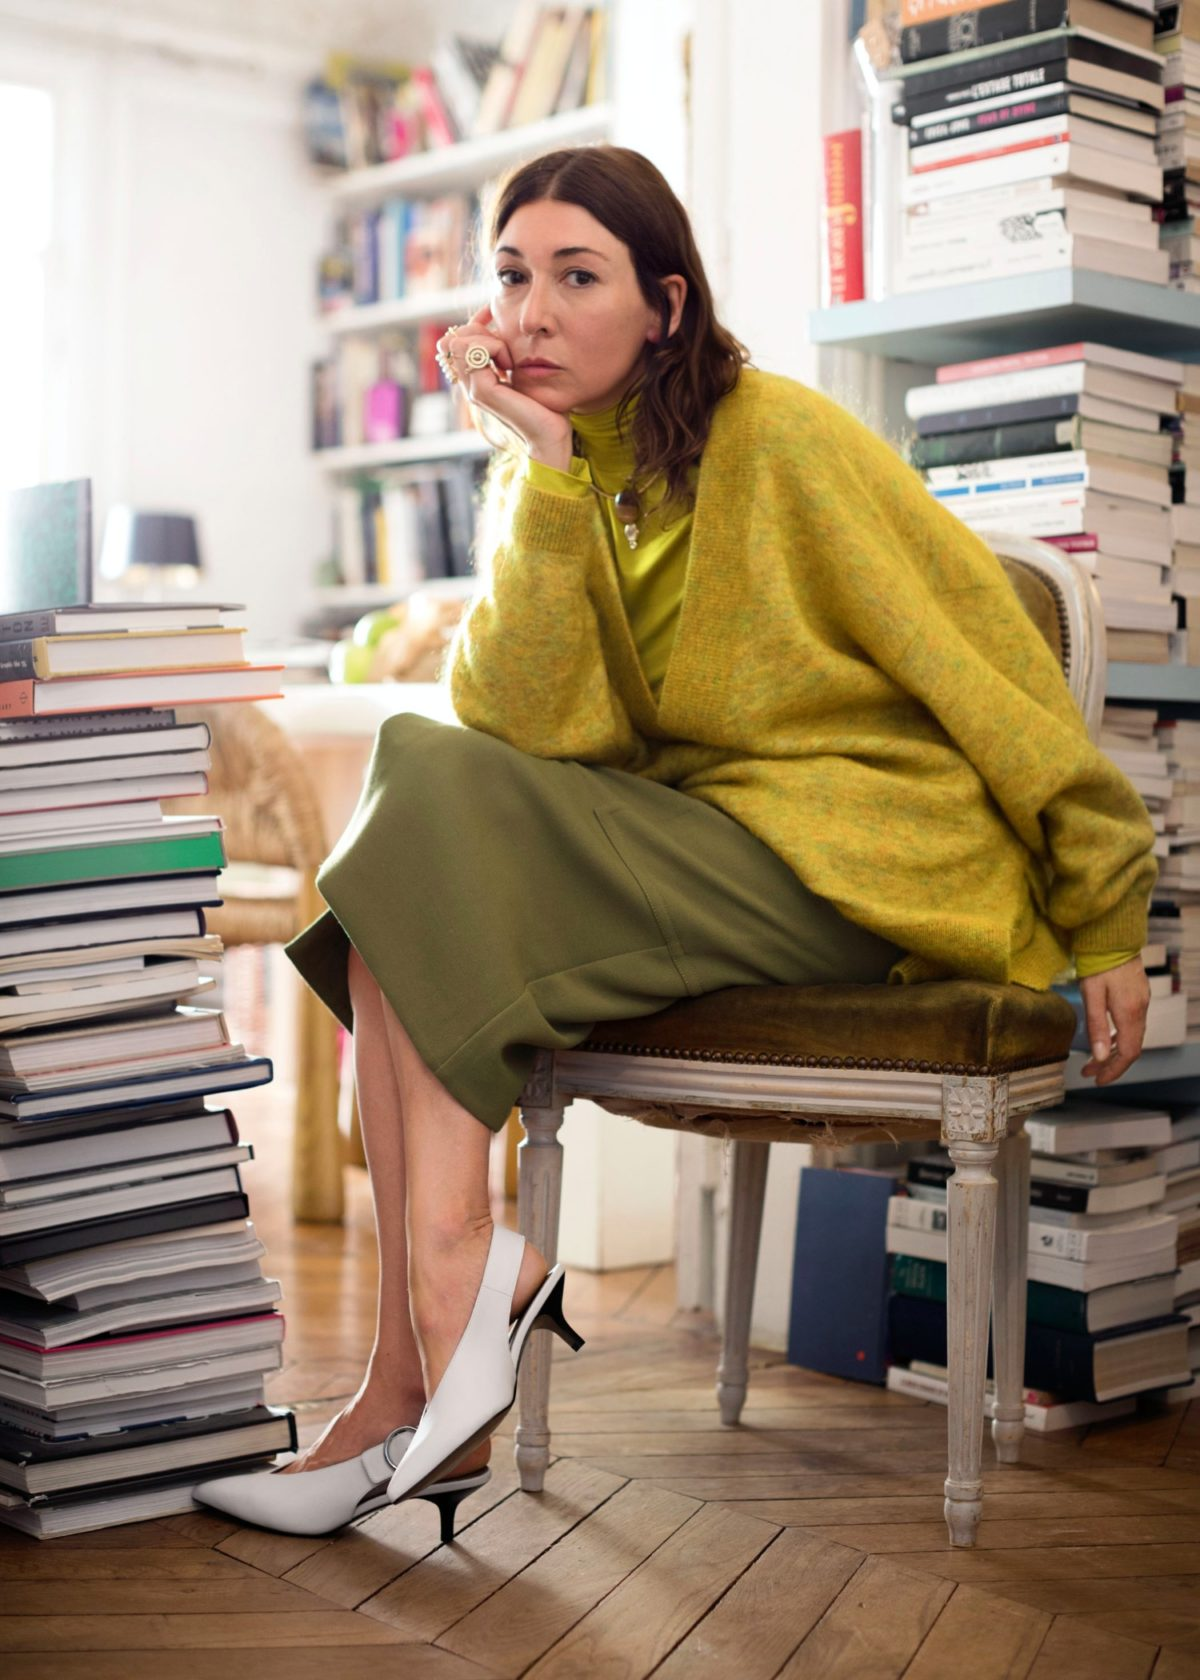 & OTHER STORIES INVITES CAMILLE BIDAULT-WADDINGTON TO SHARE HER STYLE STORY WITH US